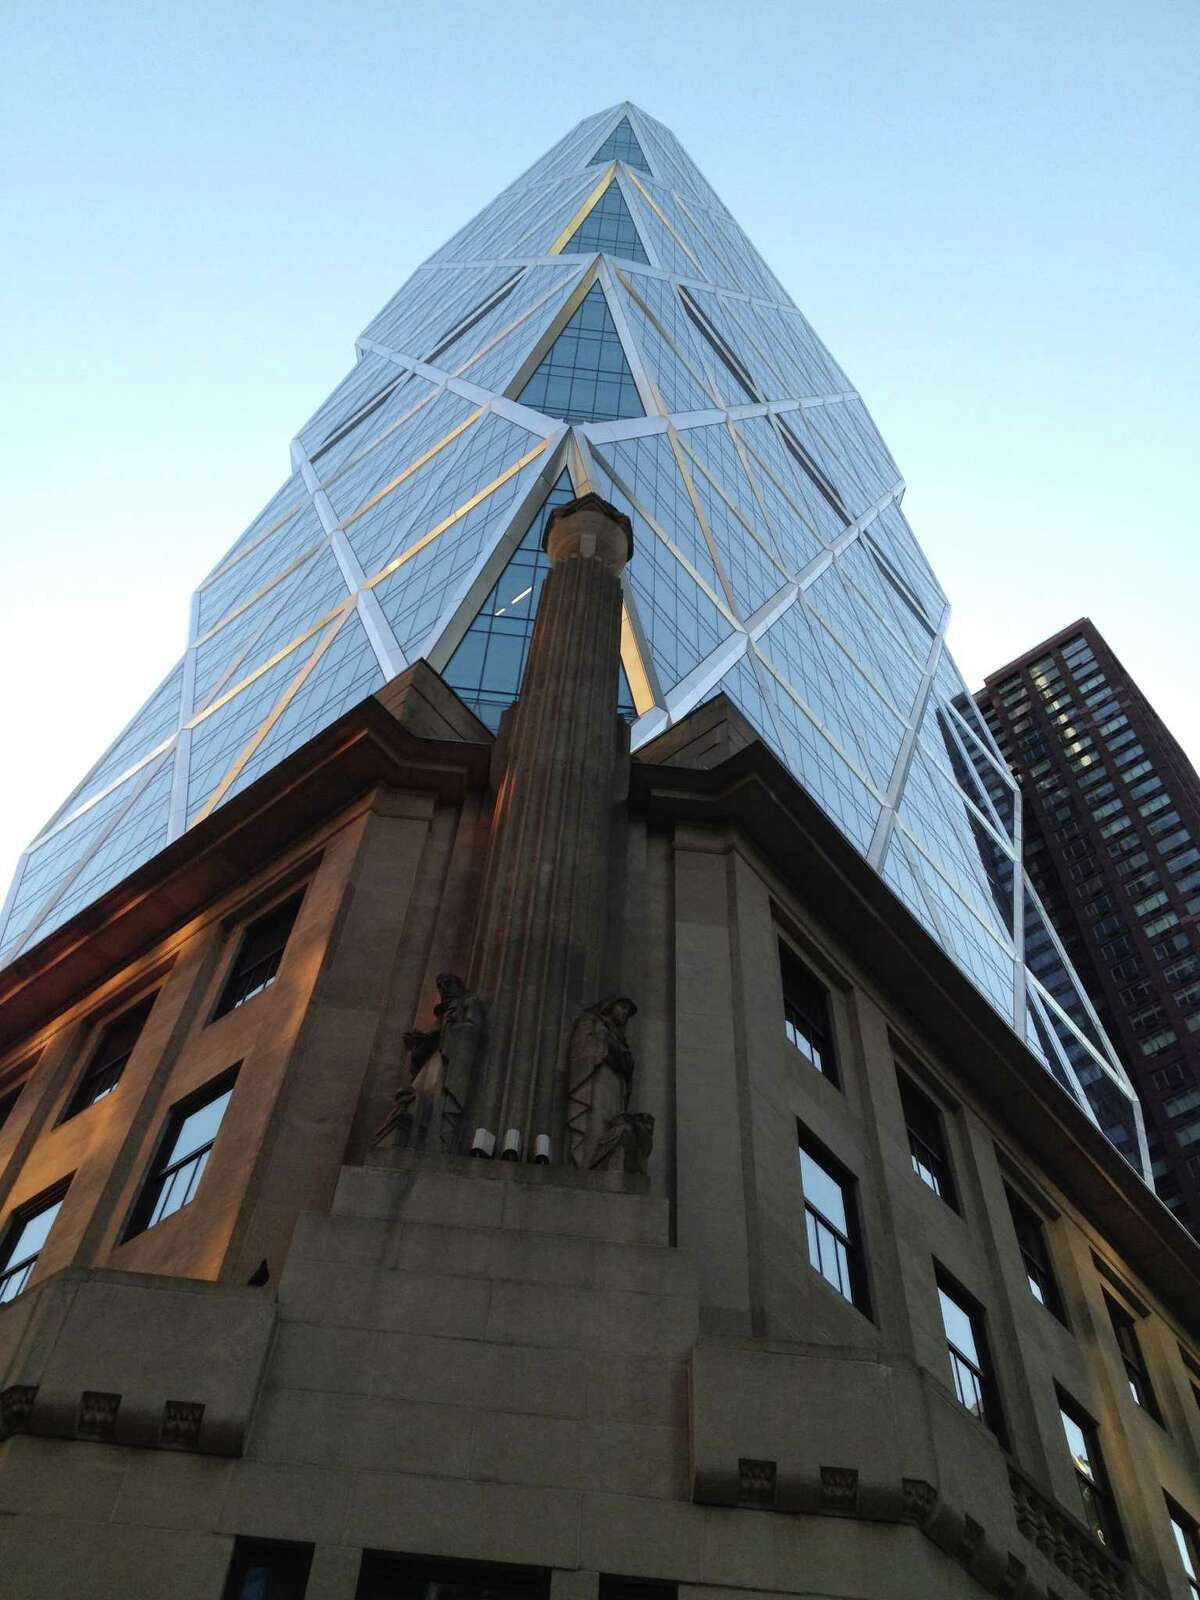 image of the Hearst Tower in New York City from the film Citizen Hearst by Leslie Iwerks